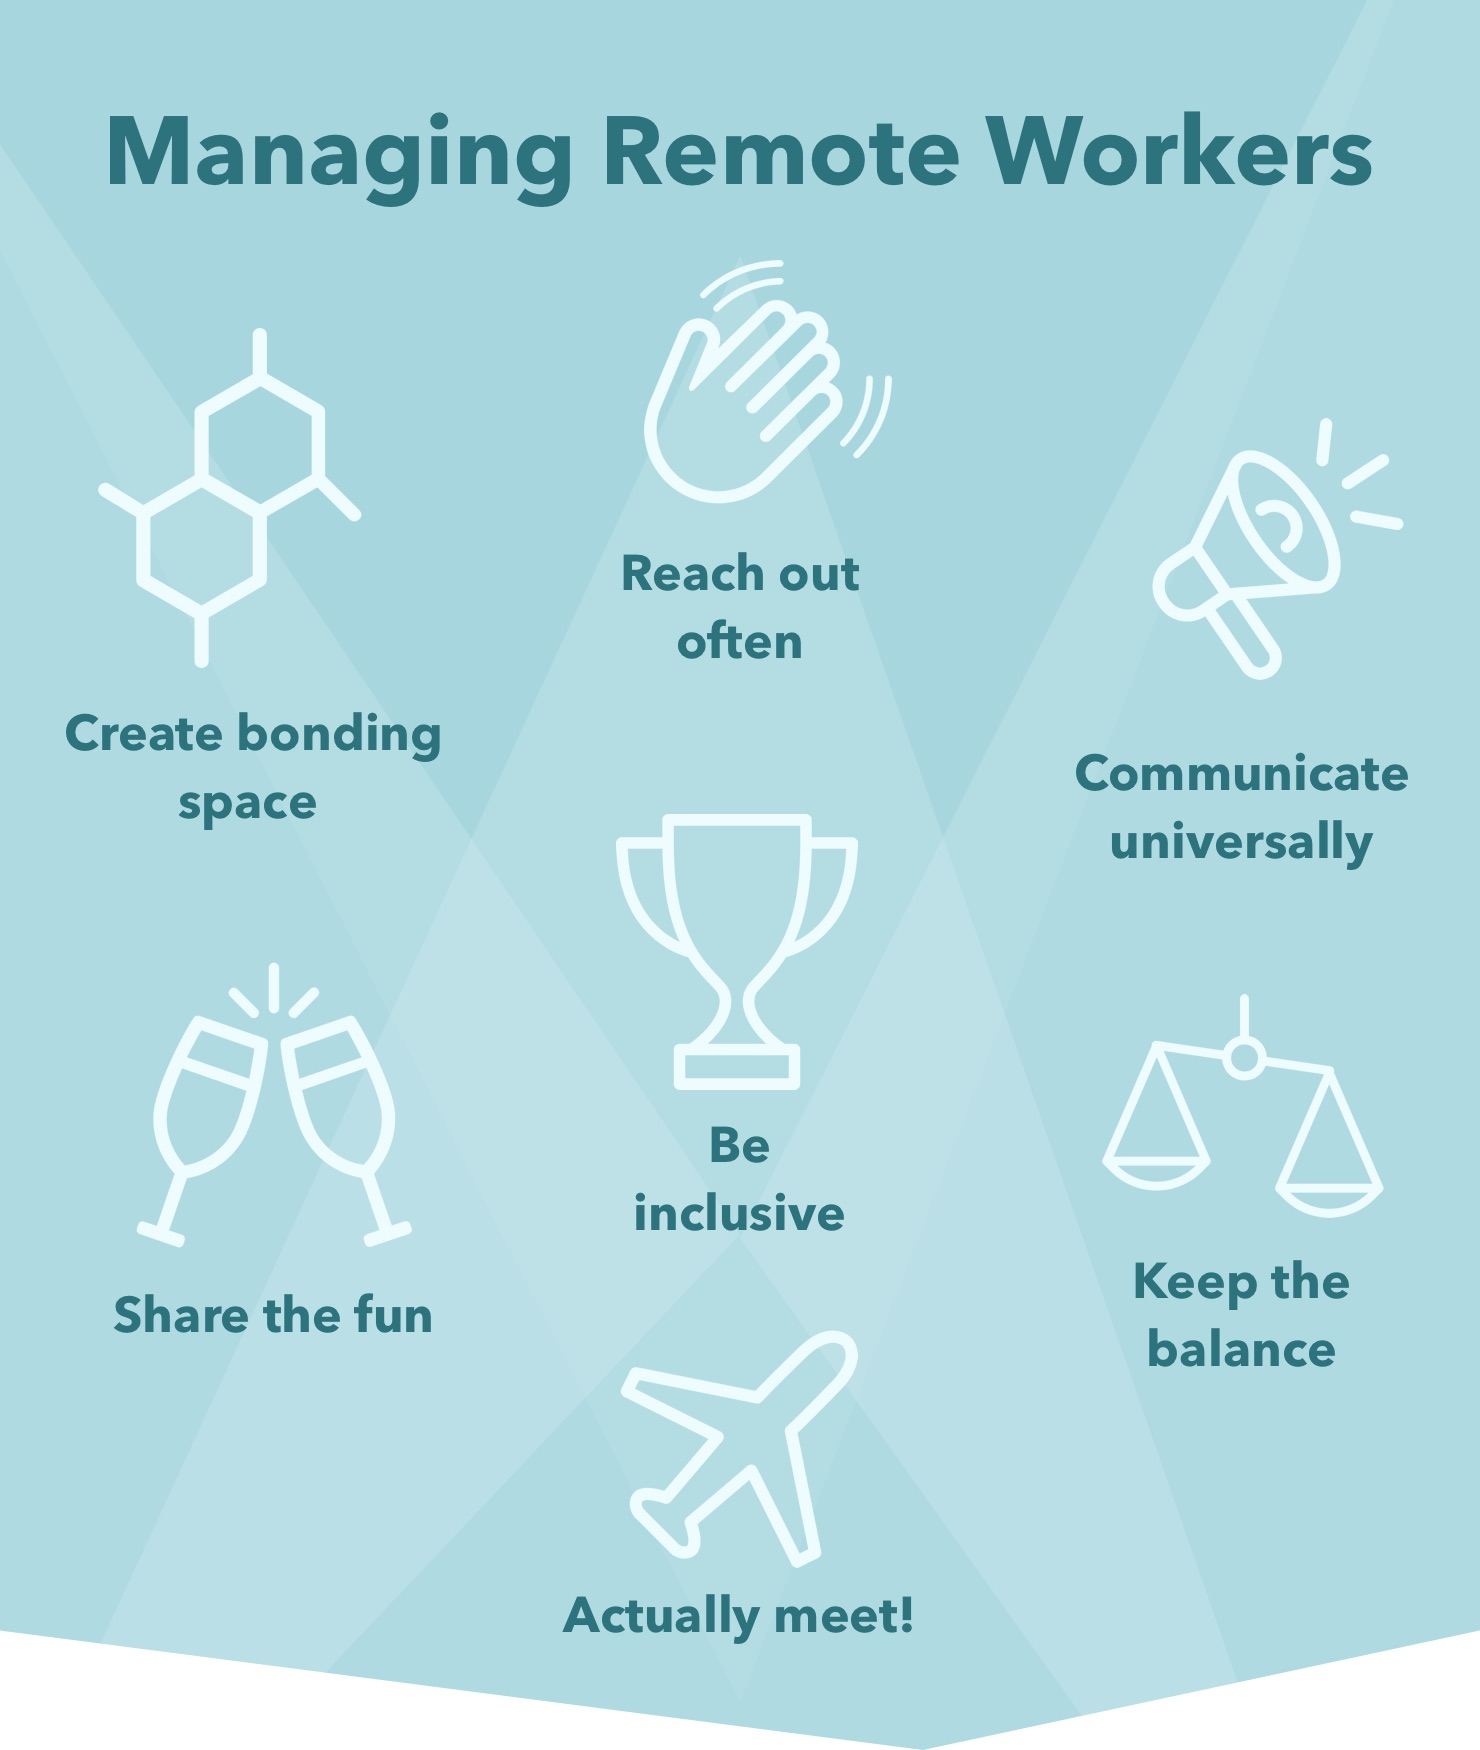 managing-remote-workers@2x